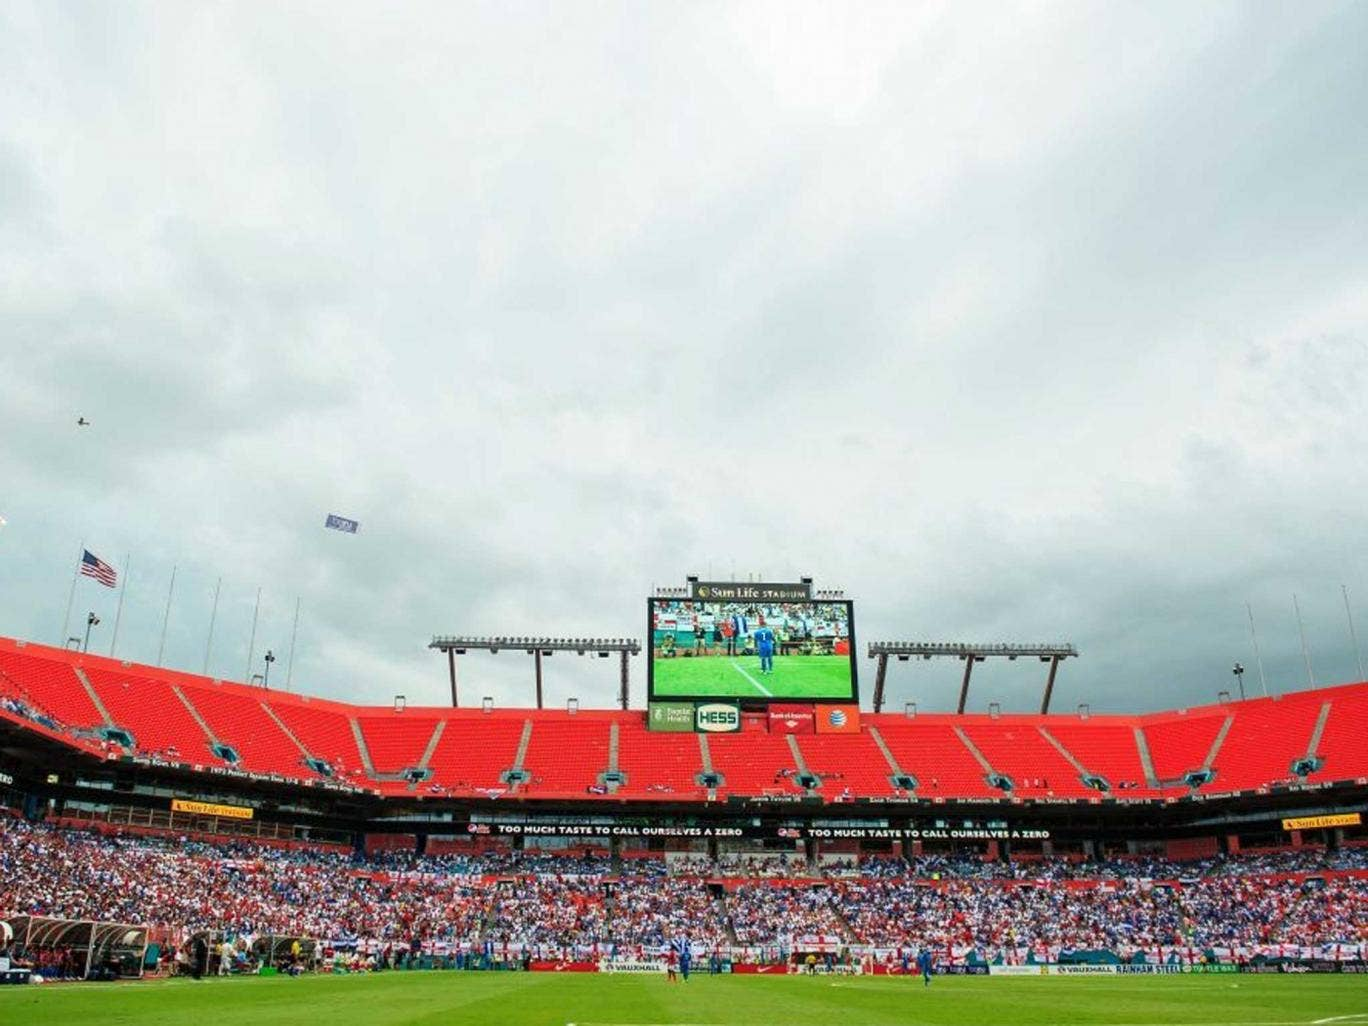 Clouds gather over the stadium